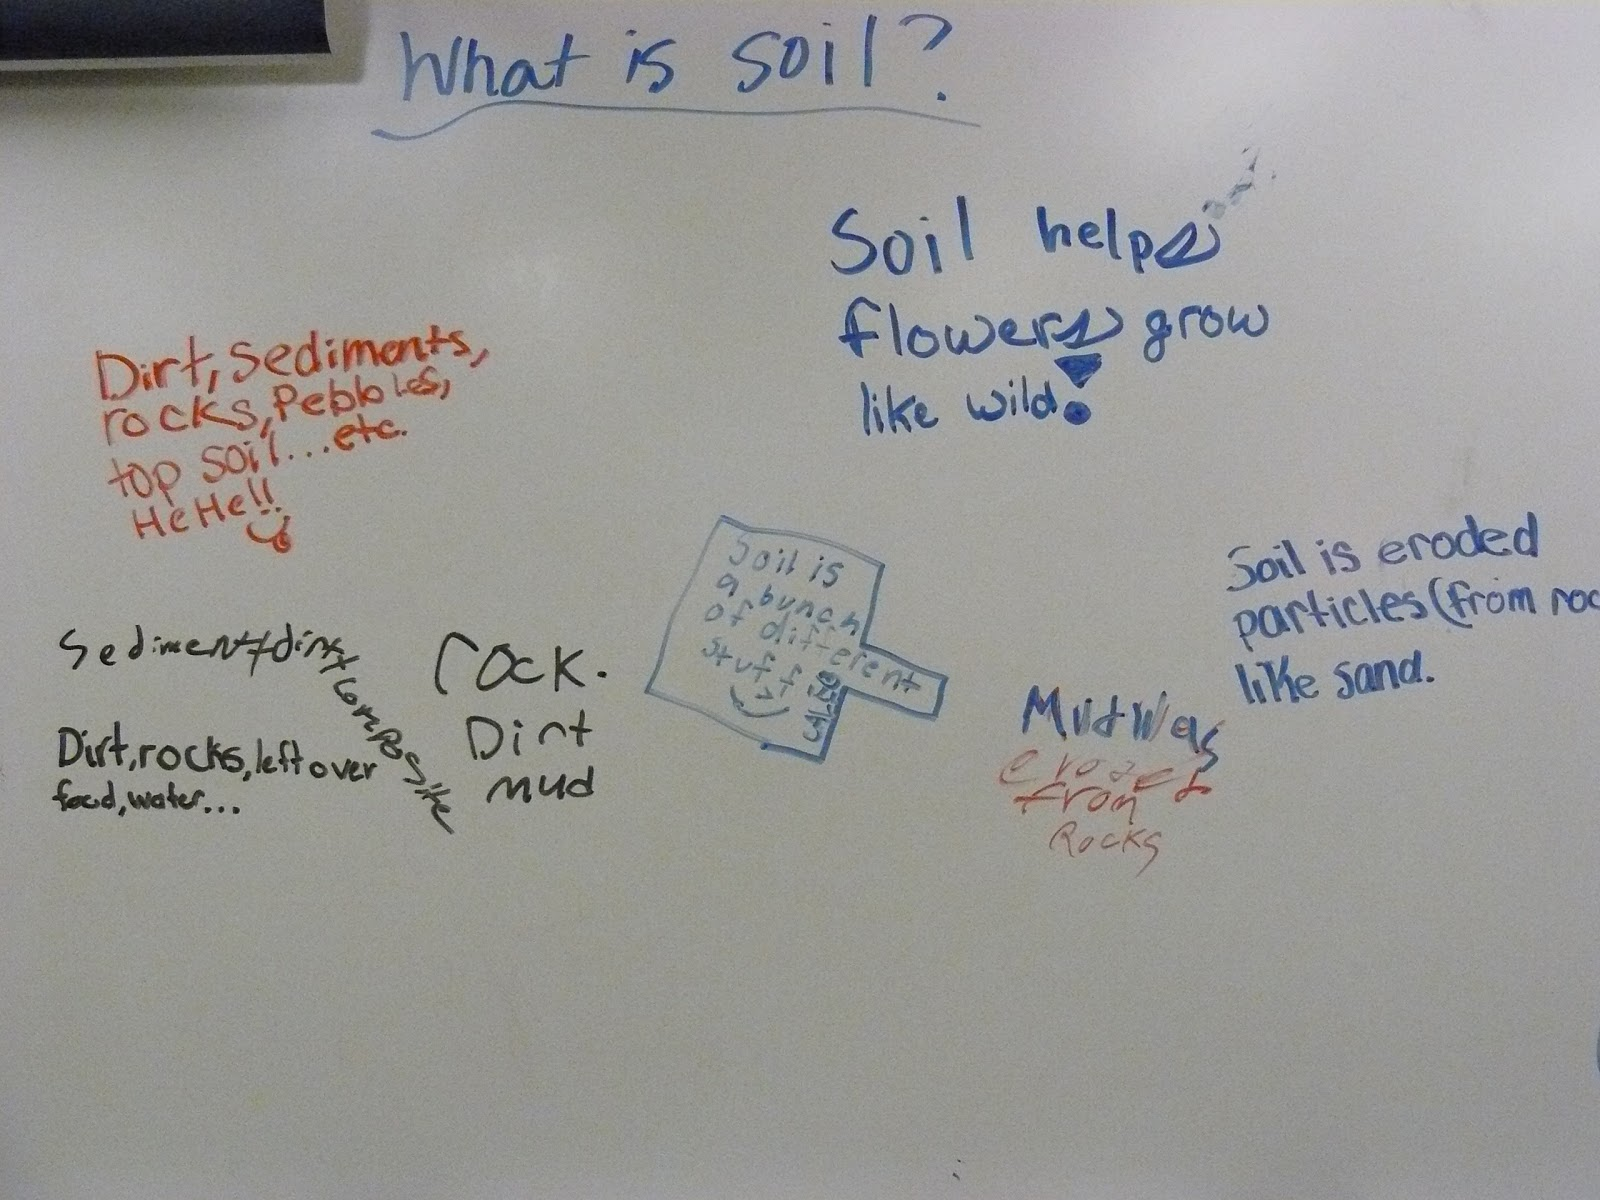 Laura gilchrist 6th grade science loesson sciencepun for Soil 6th grade science